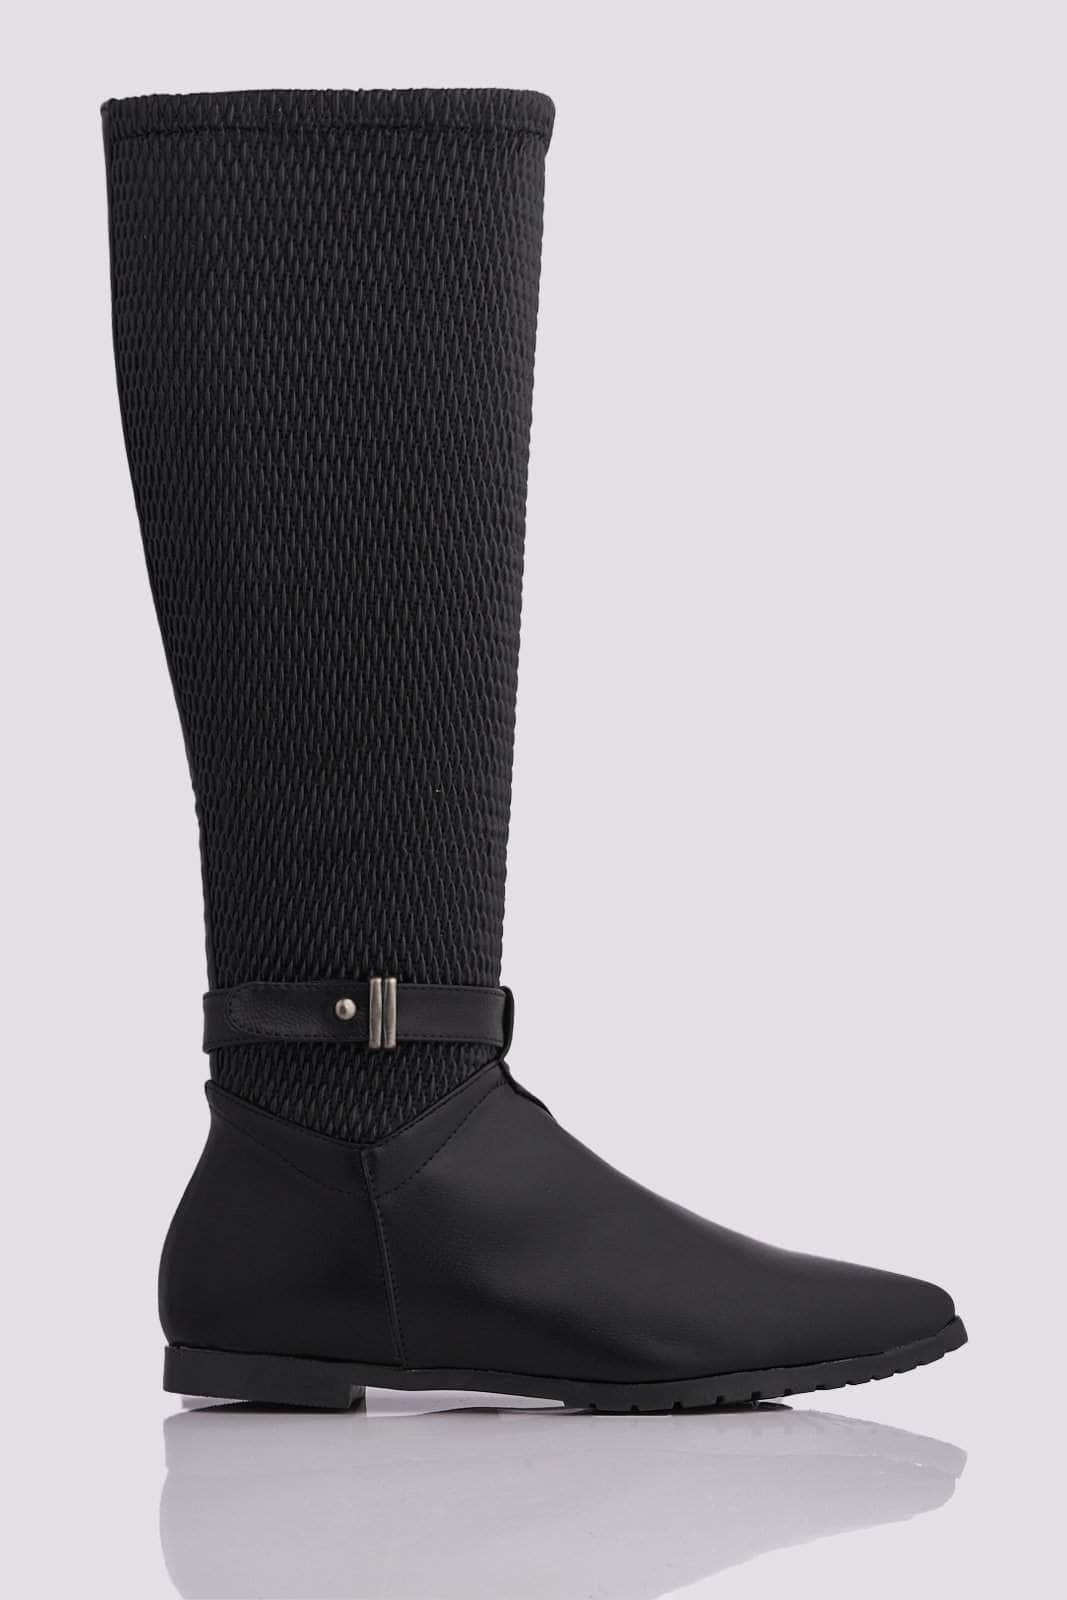 Black Pu Textured Stretch Knee High Boots